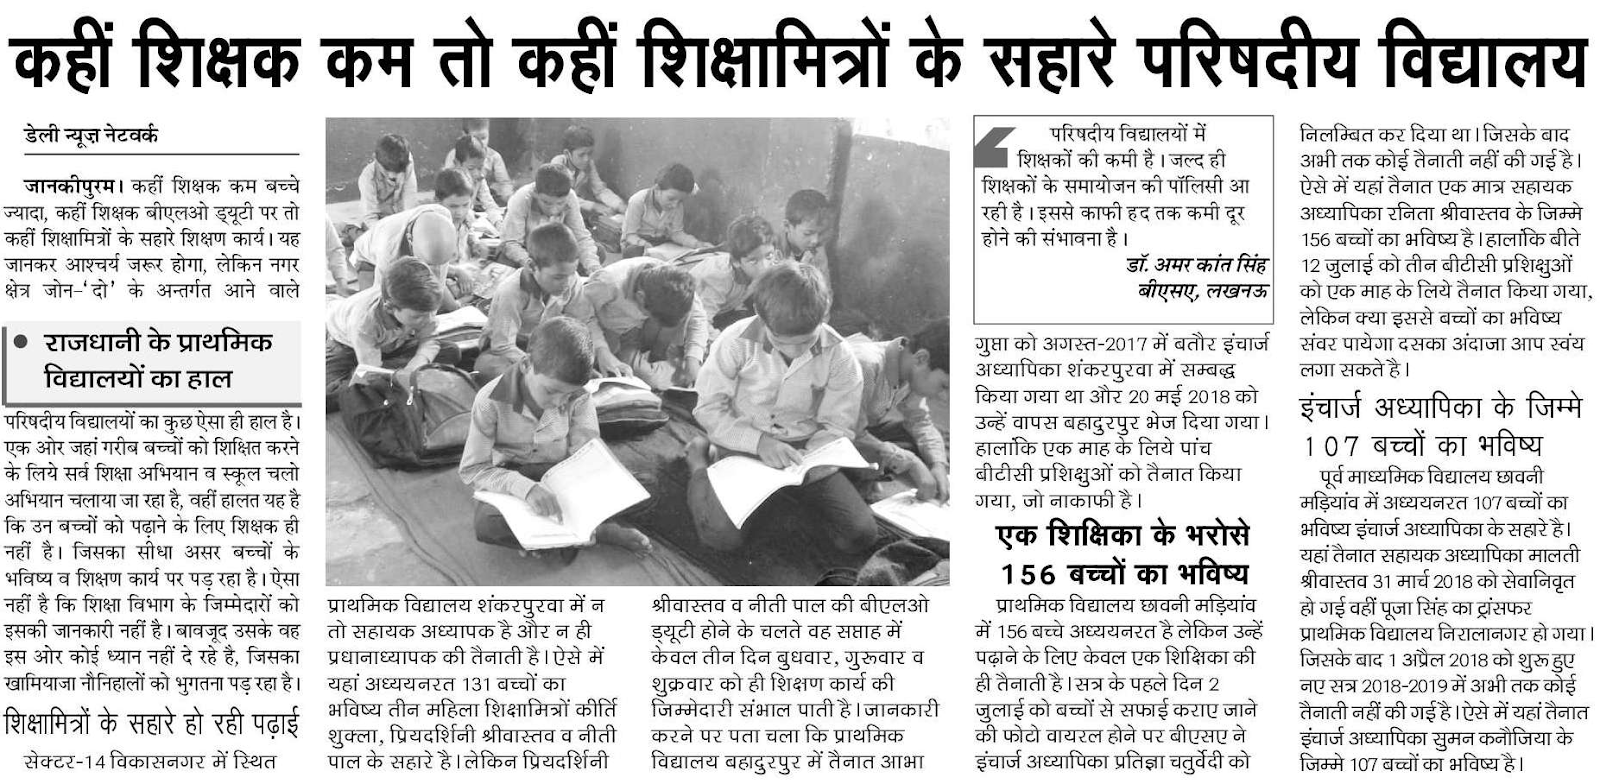 up shiksha mitra news today 2018, Basic Shiksha Latest News, Basic Shiksha Current News, shikshamitron ke sahare parishadiya vidyalay